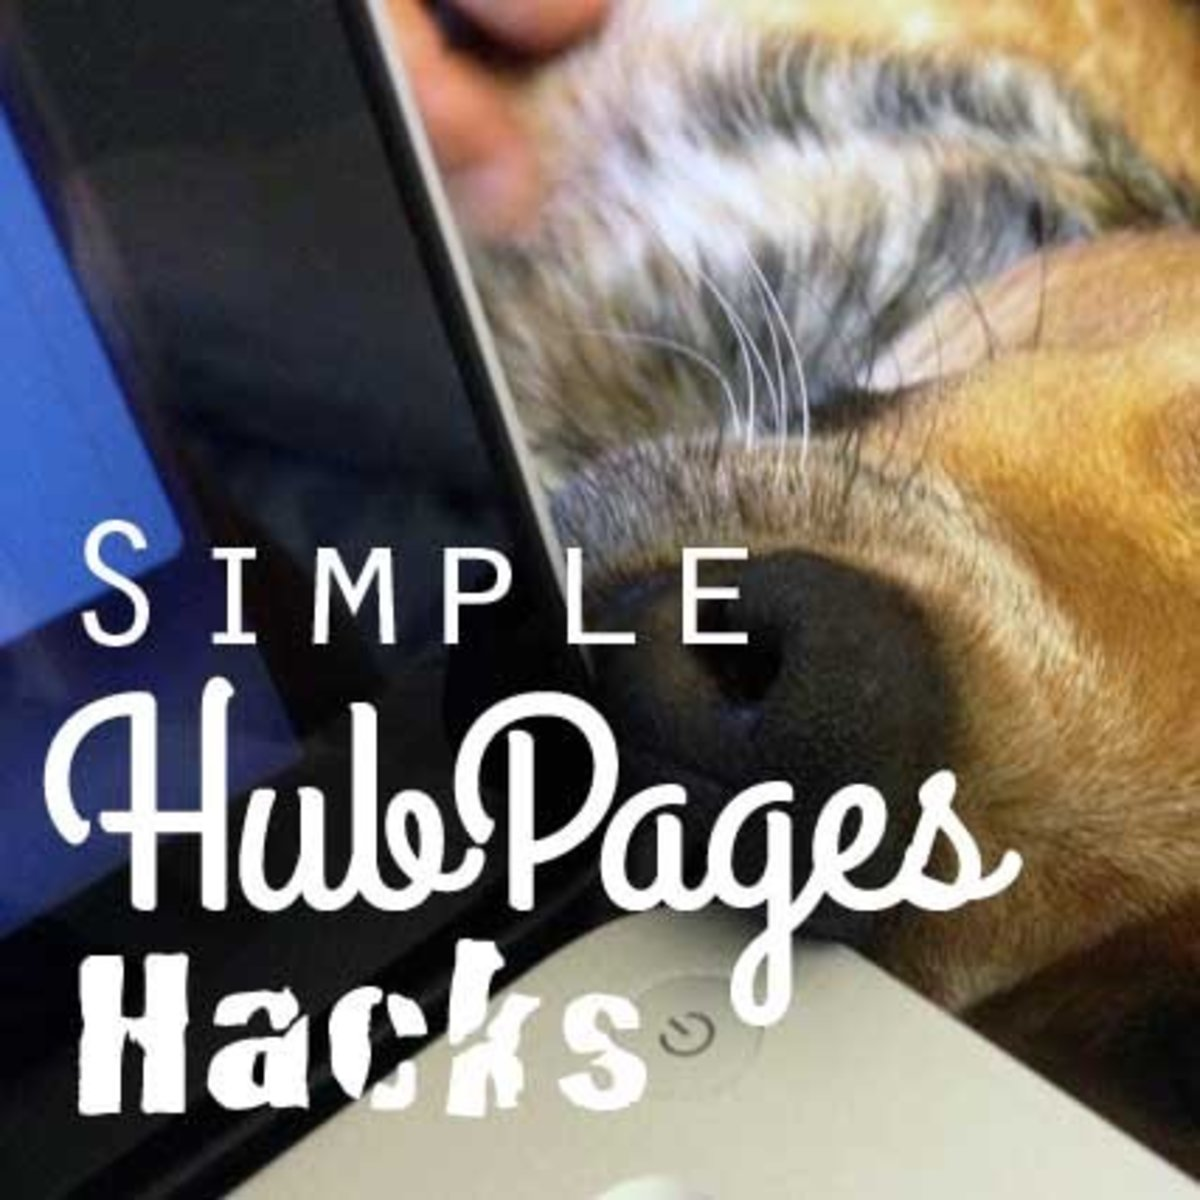 Simple Hubpages Hacks